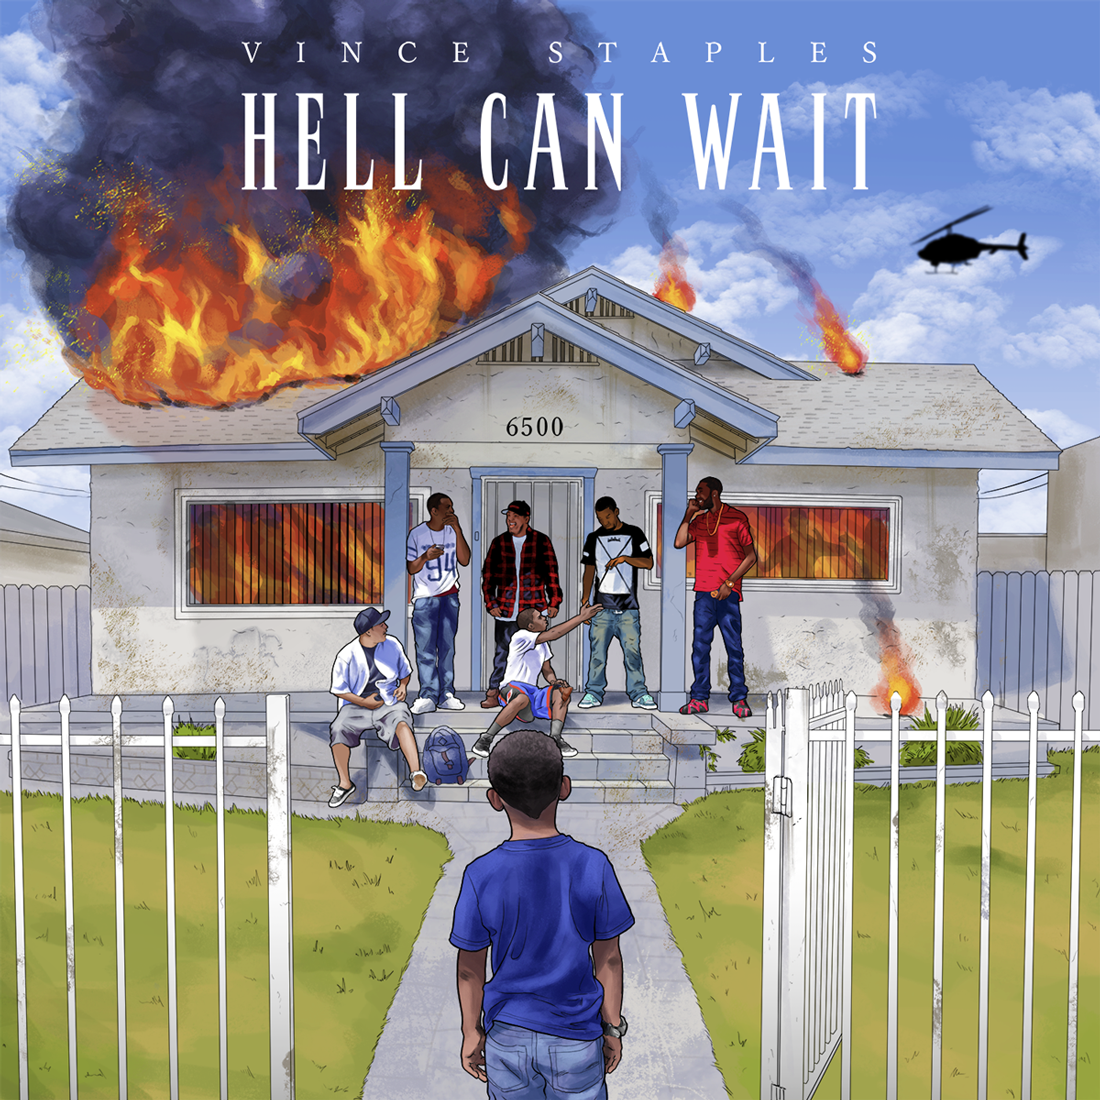 """Vince Staples // Hell Can Wait   In his debut EP,  Hell Can Wait , rapper Vince Staples ambitiously covers a range of topics–gang violence, police brutality, and love,to name a few. """"Blue Suede"""" carries a heartbreaking desire to """"outlive them red roses"""" and escape the bloodshed around him, while acknowledging his youth with a simple wish for new Jordans. Though he insists it's not about Ferguson, the powerful narrative of police violence in """"Hands Up"""" feels desperately relevant to recent events: """"They expect respect and nonviolence/I refuse the right to be silent.""""  Listen:  """"Blue Suede"""""""